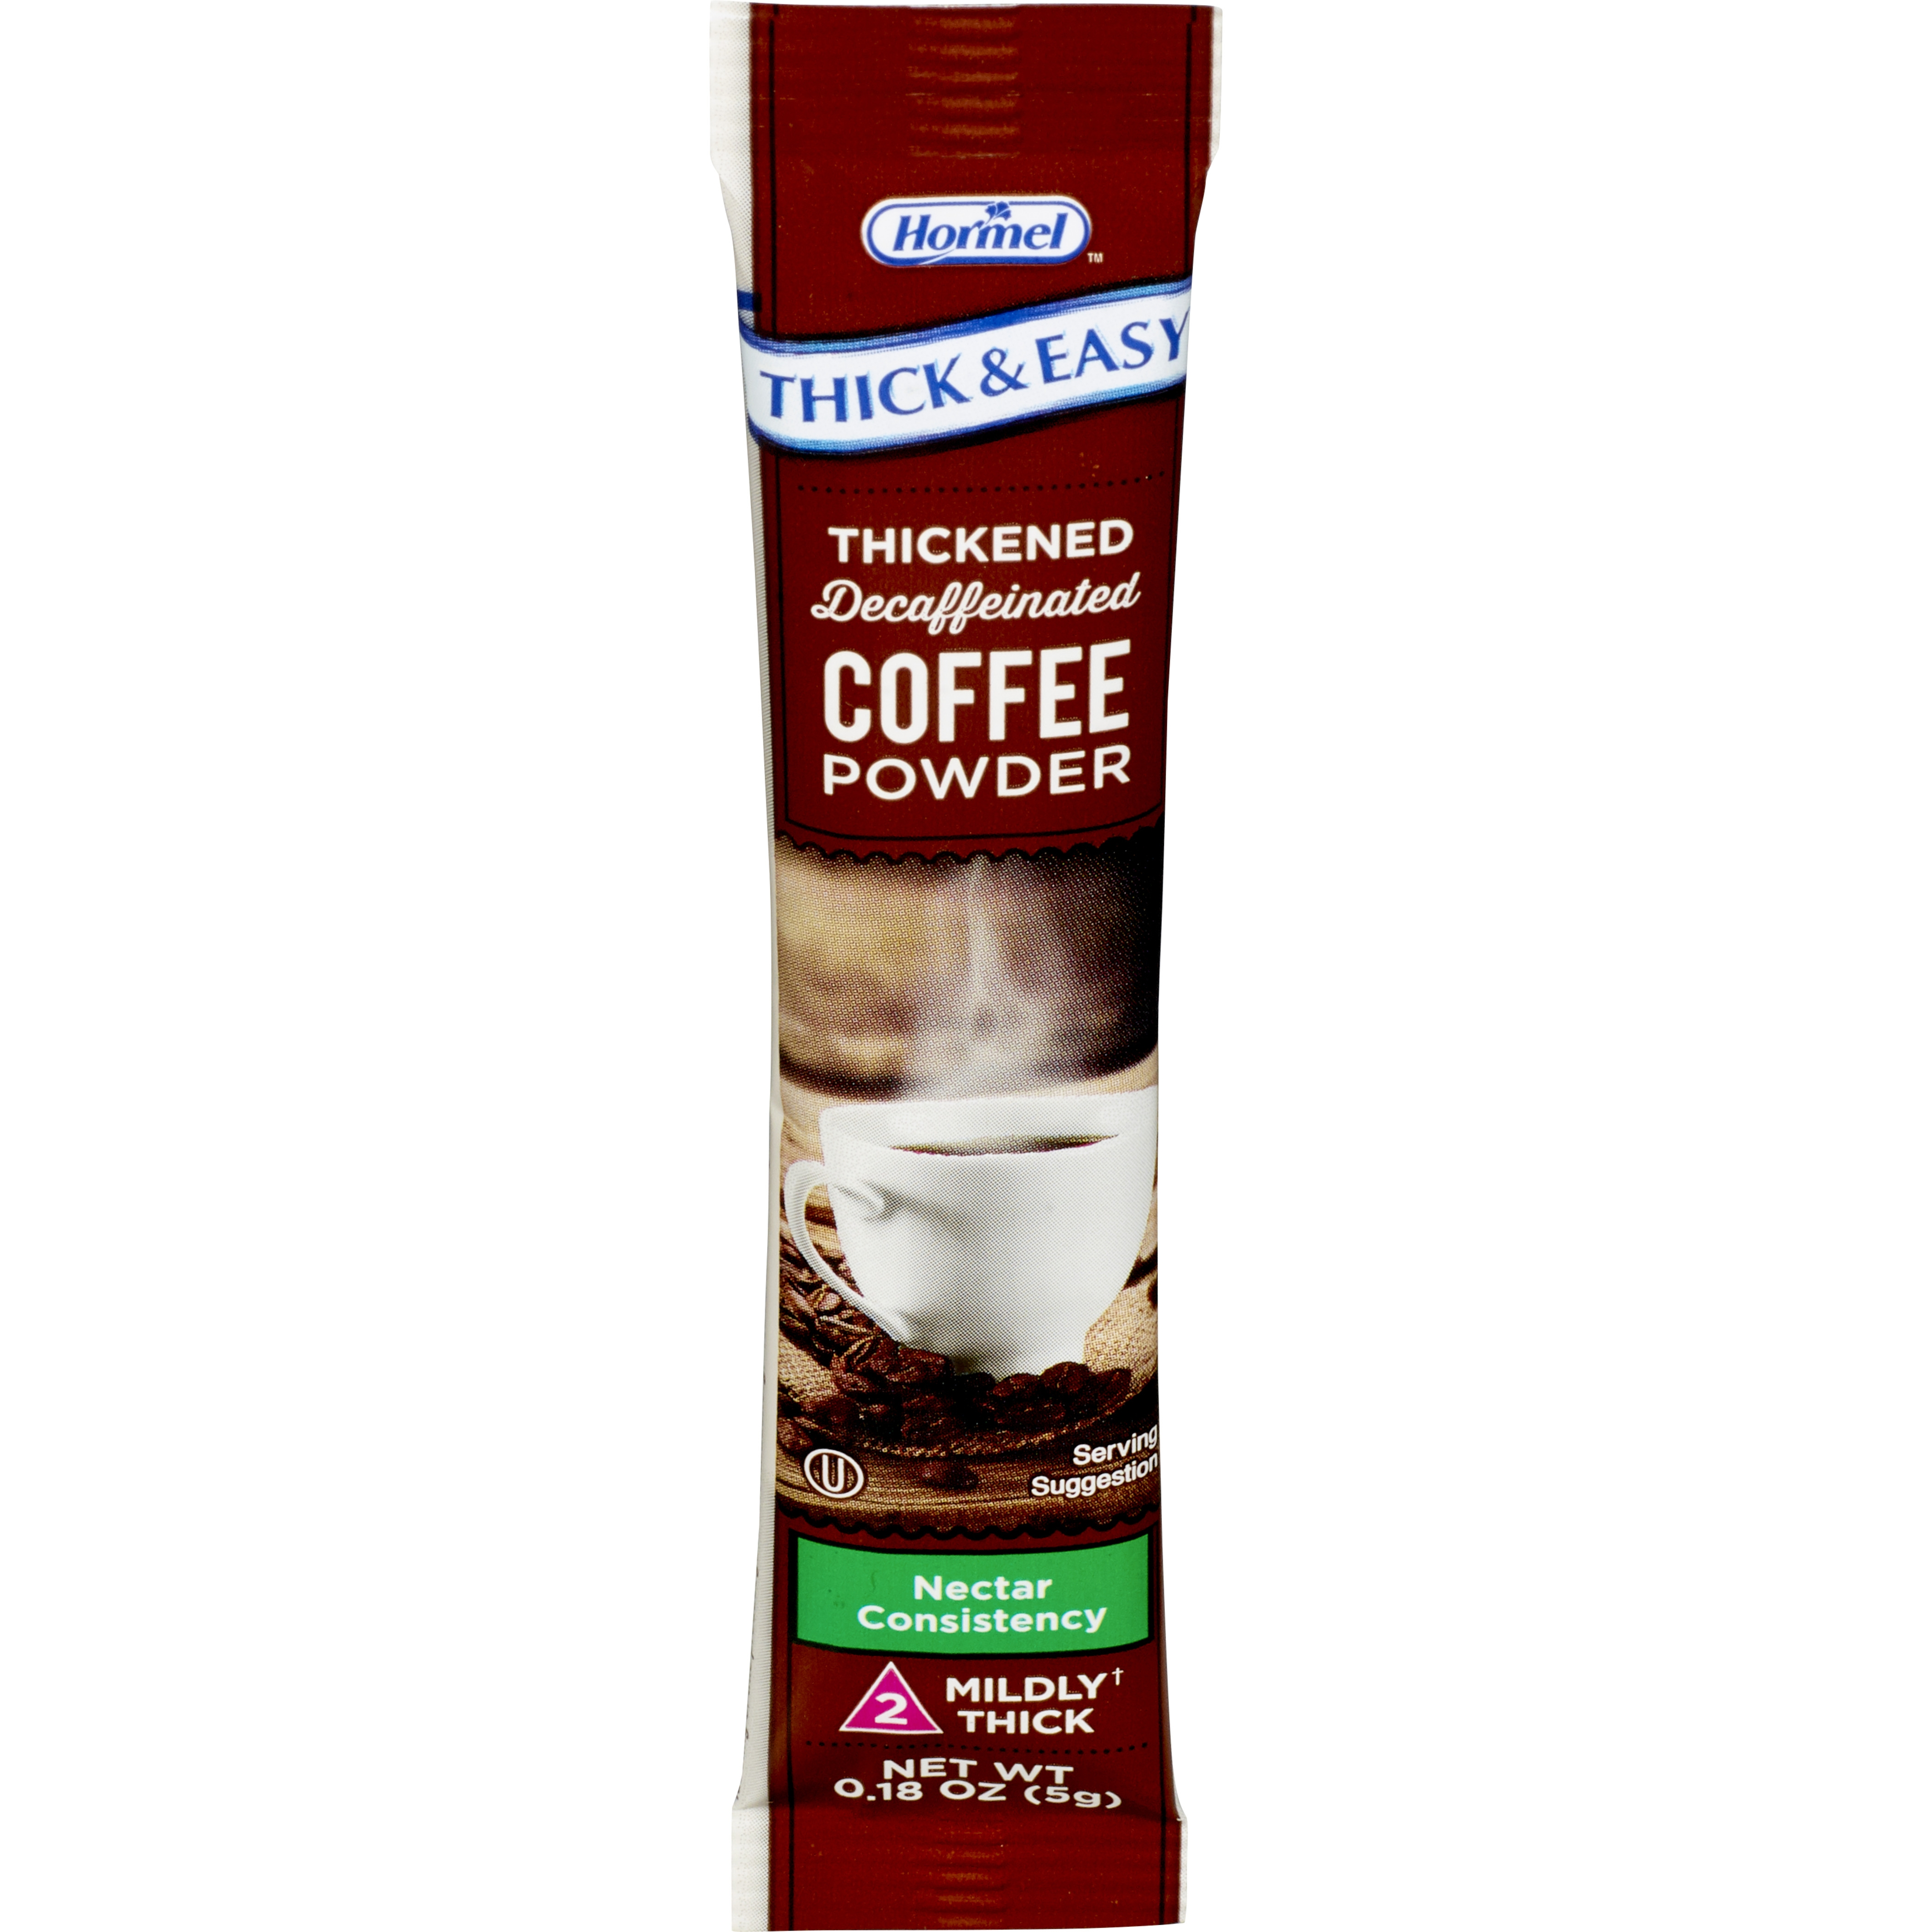 Thick & Easy Nectar Consistency Coffee Thickened Decaffeinated Beverage, 7 Gram, 81331, Case of 72